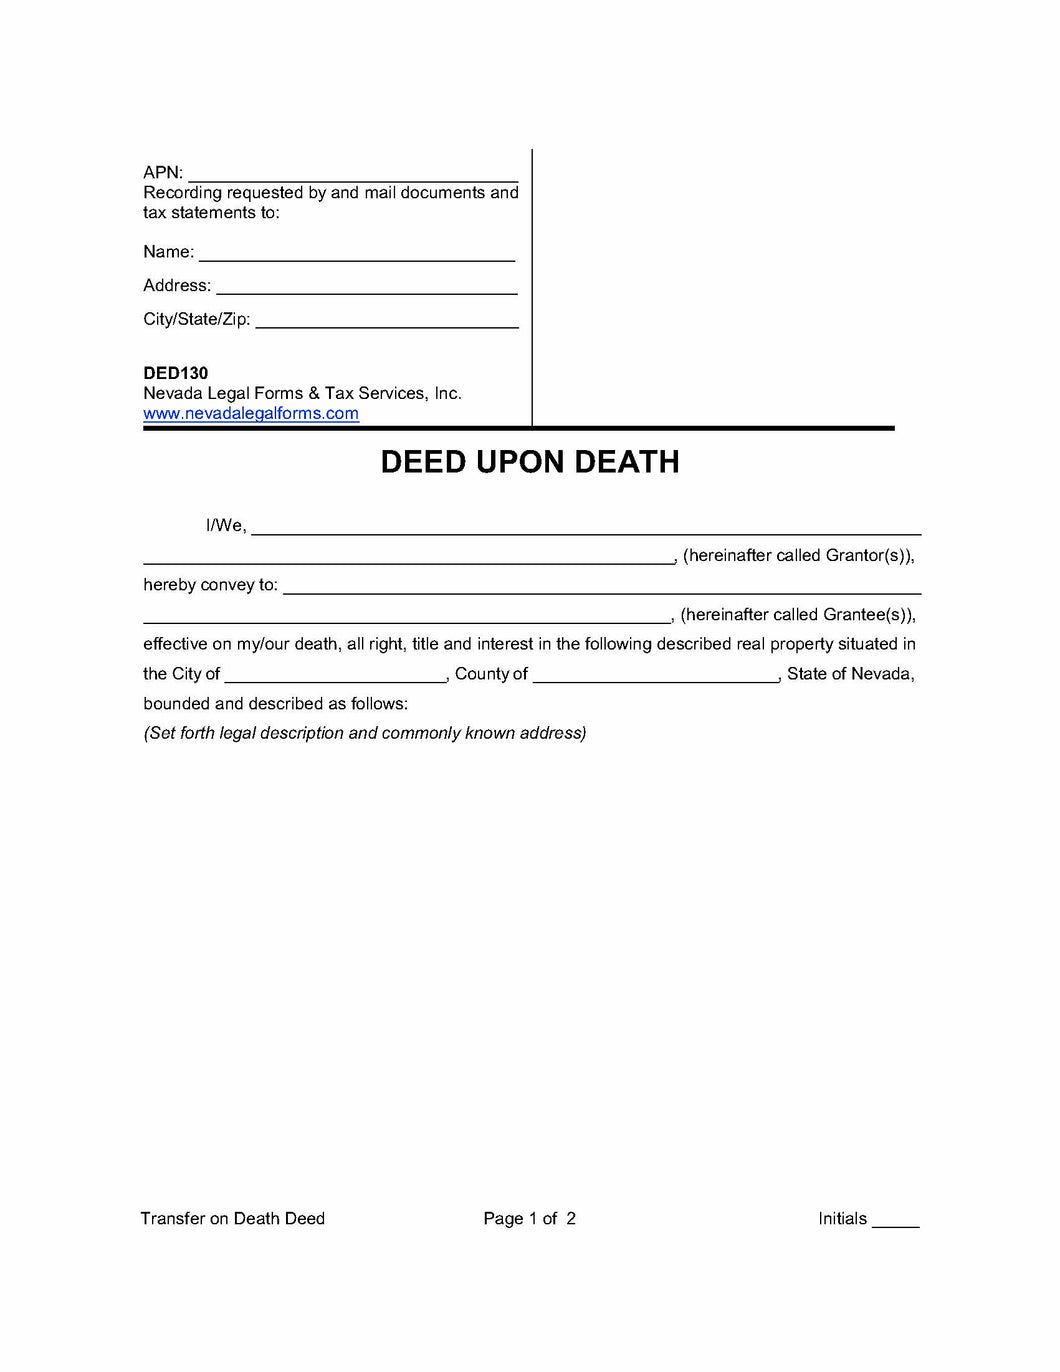 Deed Upon Death